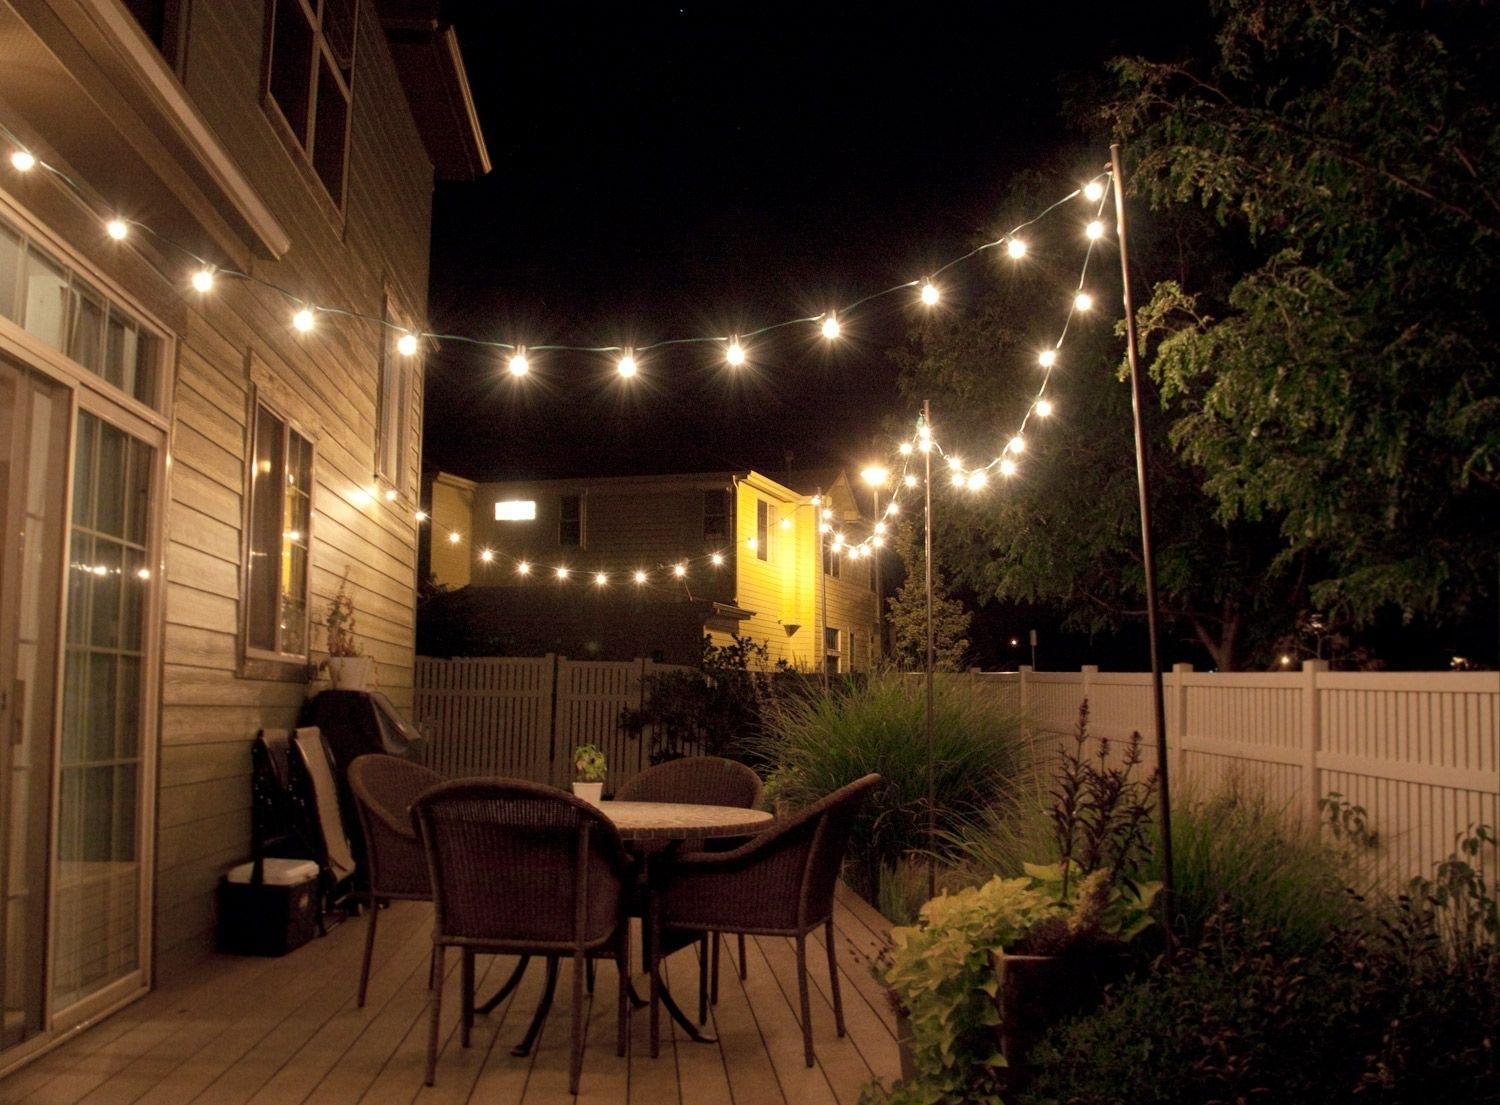 How To Make Inexpensive Poles To Hang String Lights On - Café Style with Outdoor Lanterns For Deck (Image 12 of 20)